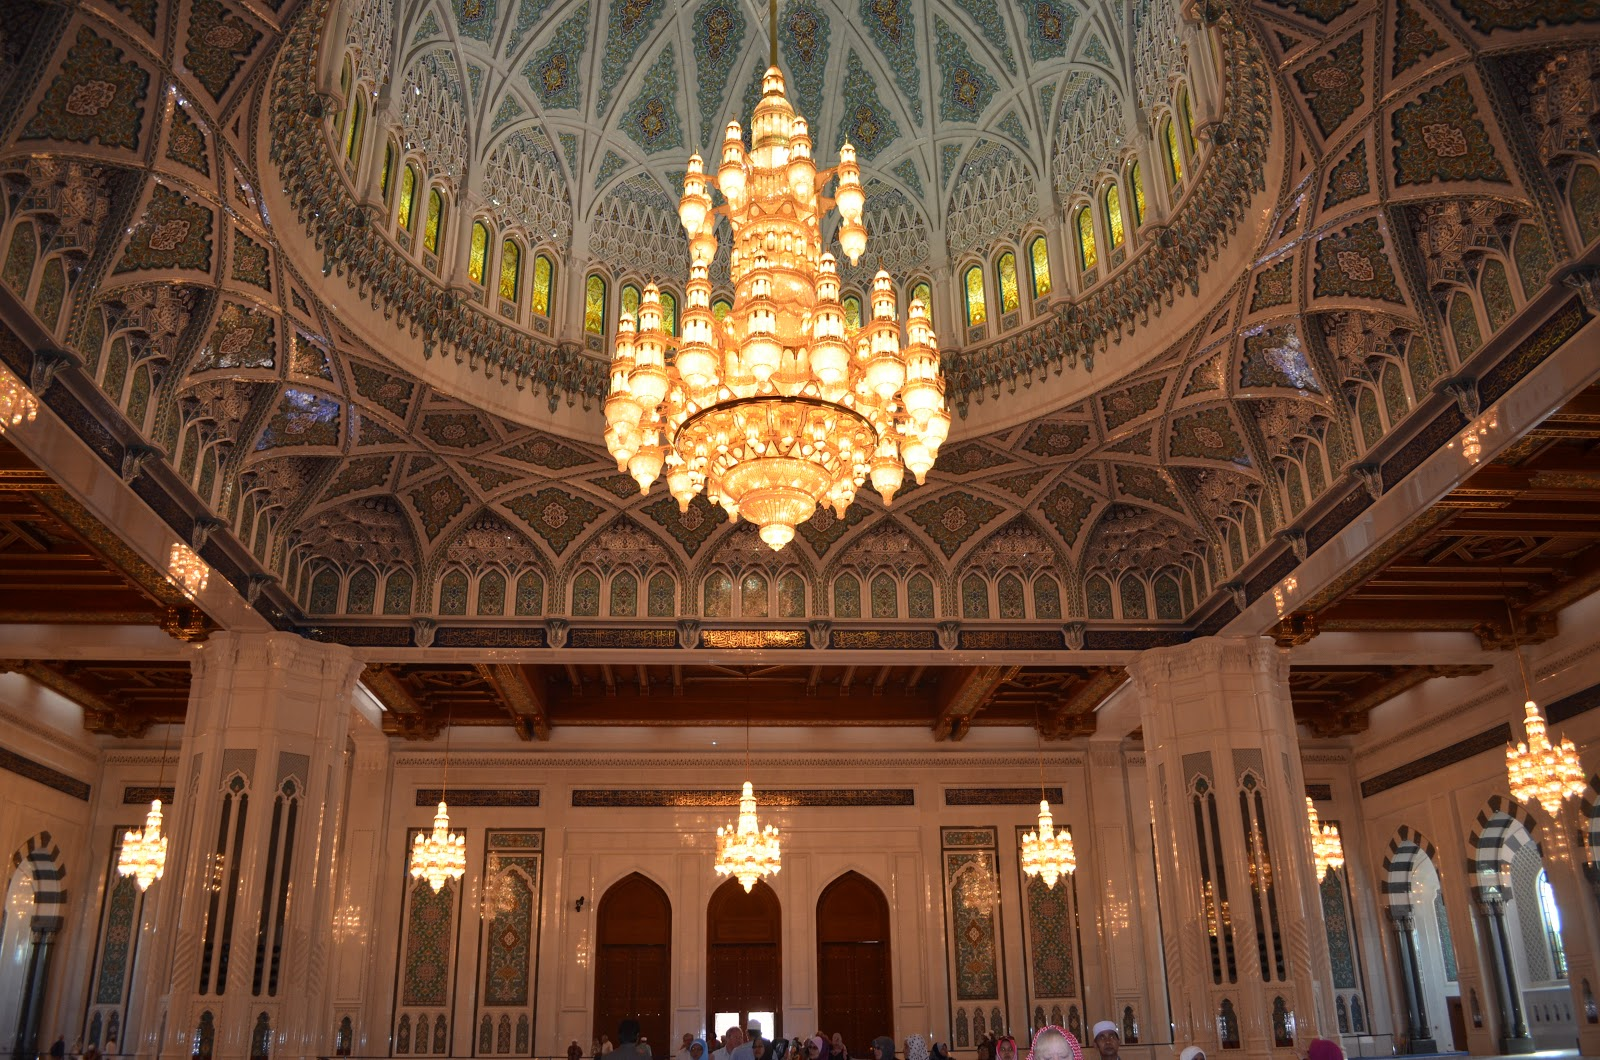 Oman oh my sultan qaboos grand mosque and here it is the piece de resistance the worlds largest swarovski crystal chandelier it is about 24 feet wide and about 42 feet high breathtaking arubaitofo Image collections